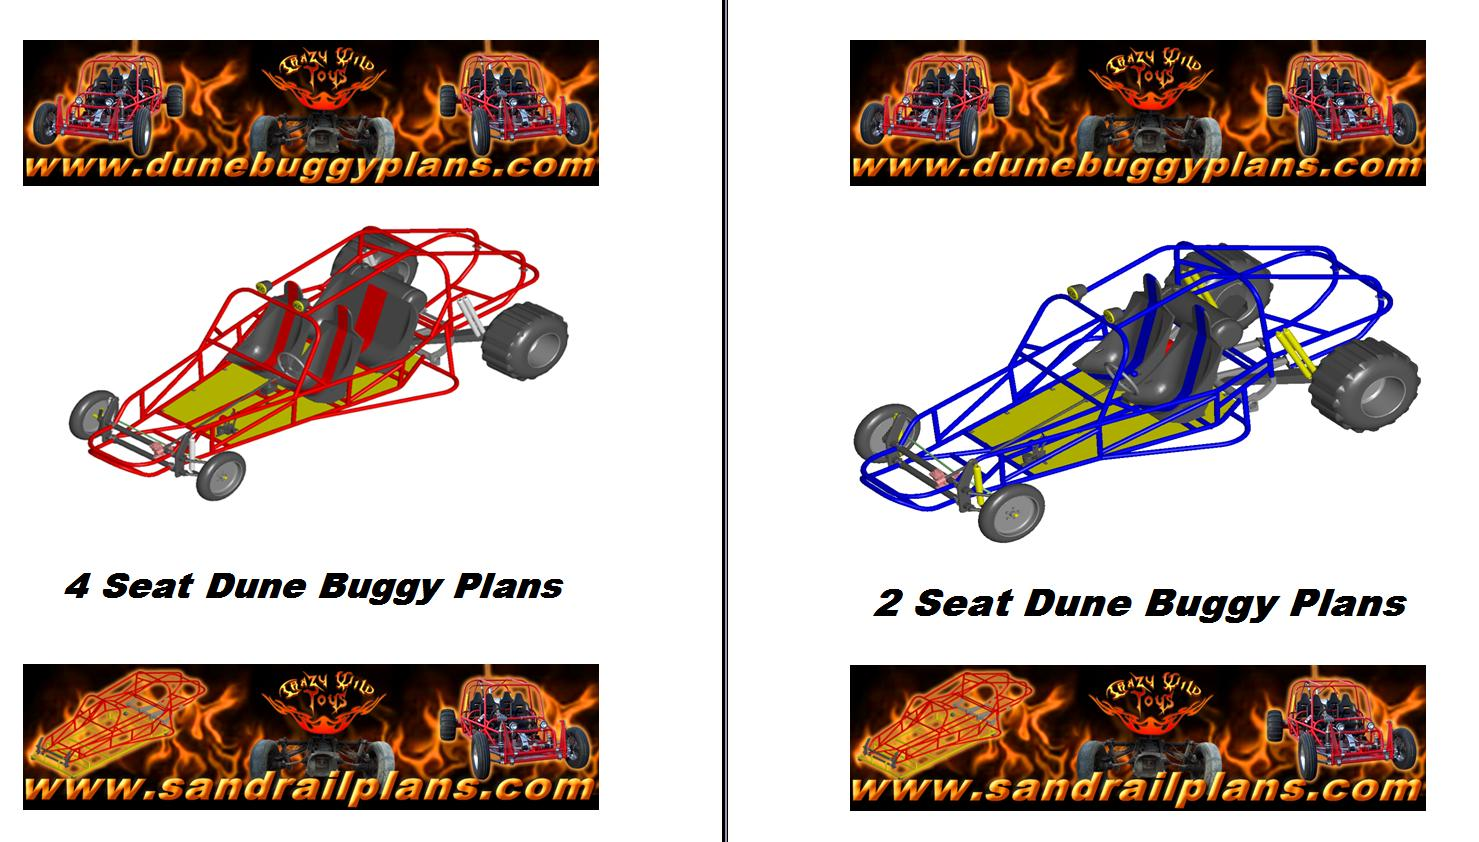 2 Great Options ! 2 Seat Dune Buggy Plans Or 4 Seat Dune Buggy Plans ...